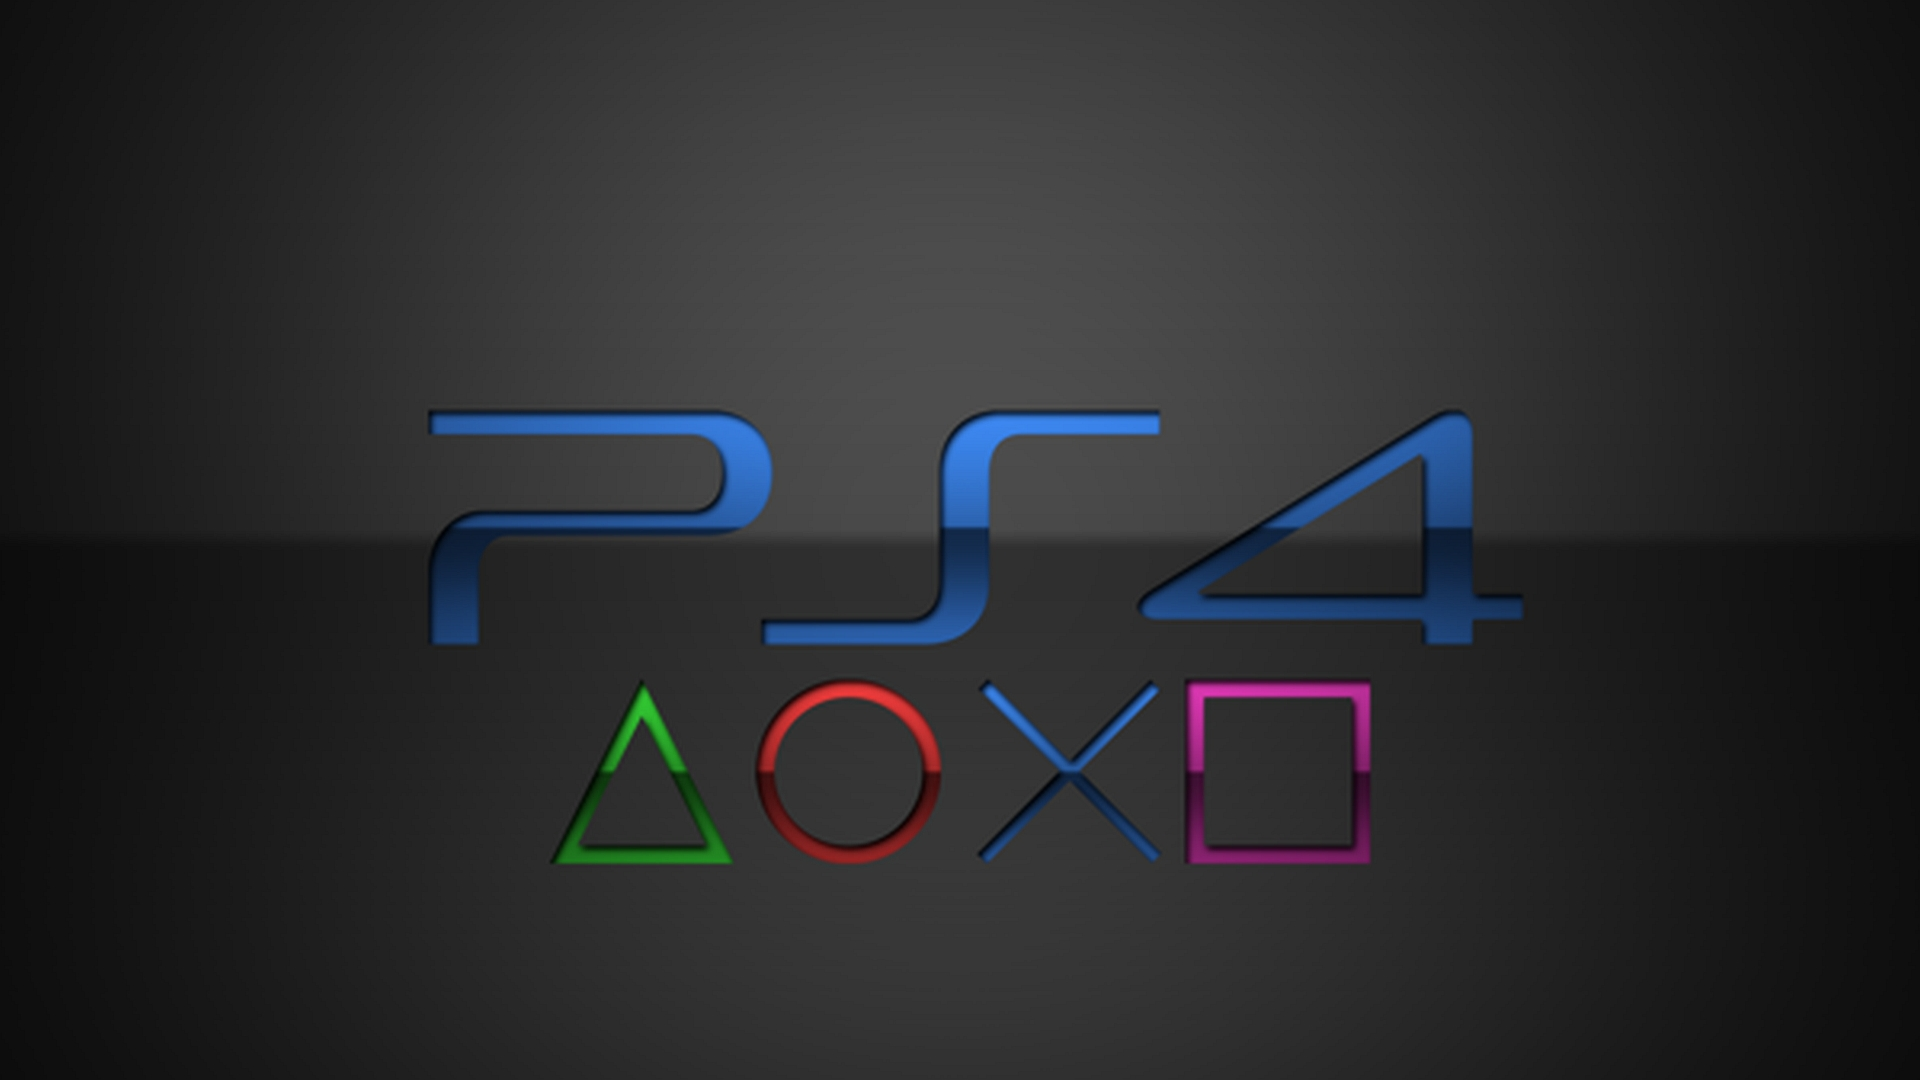 PlayStation Logo Wallpaper 1920x1080